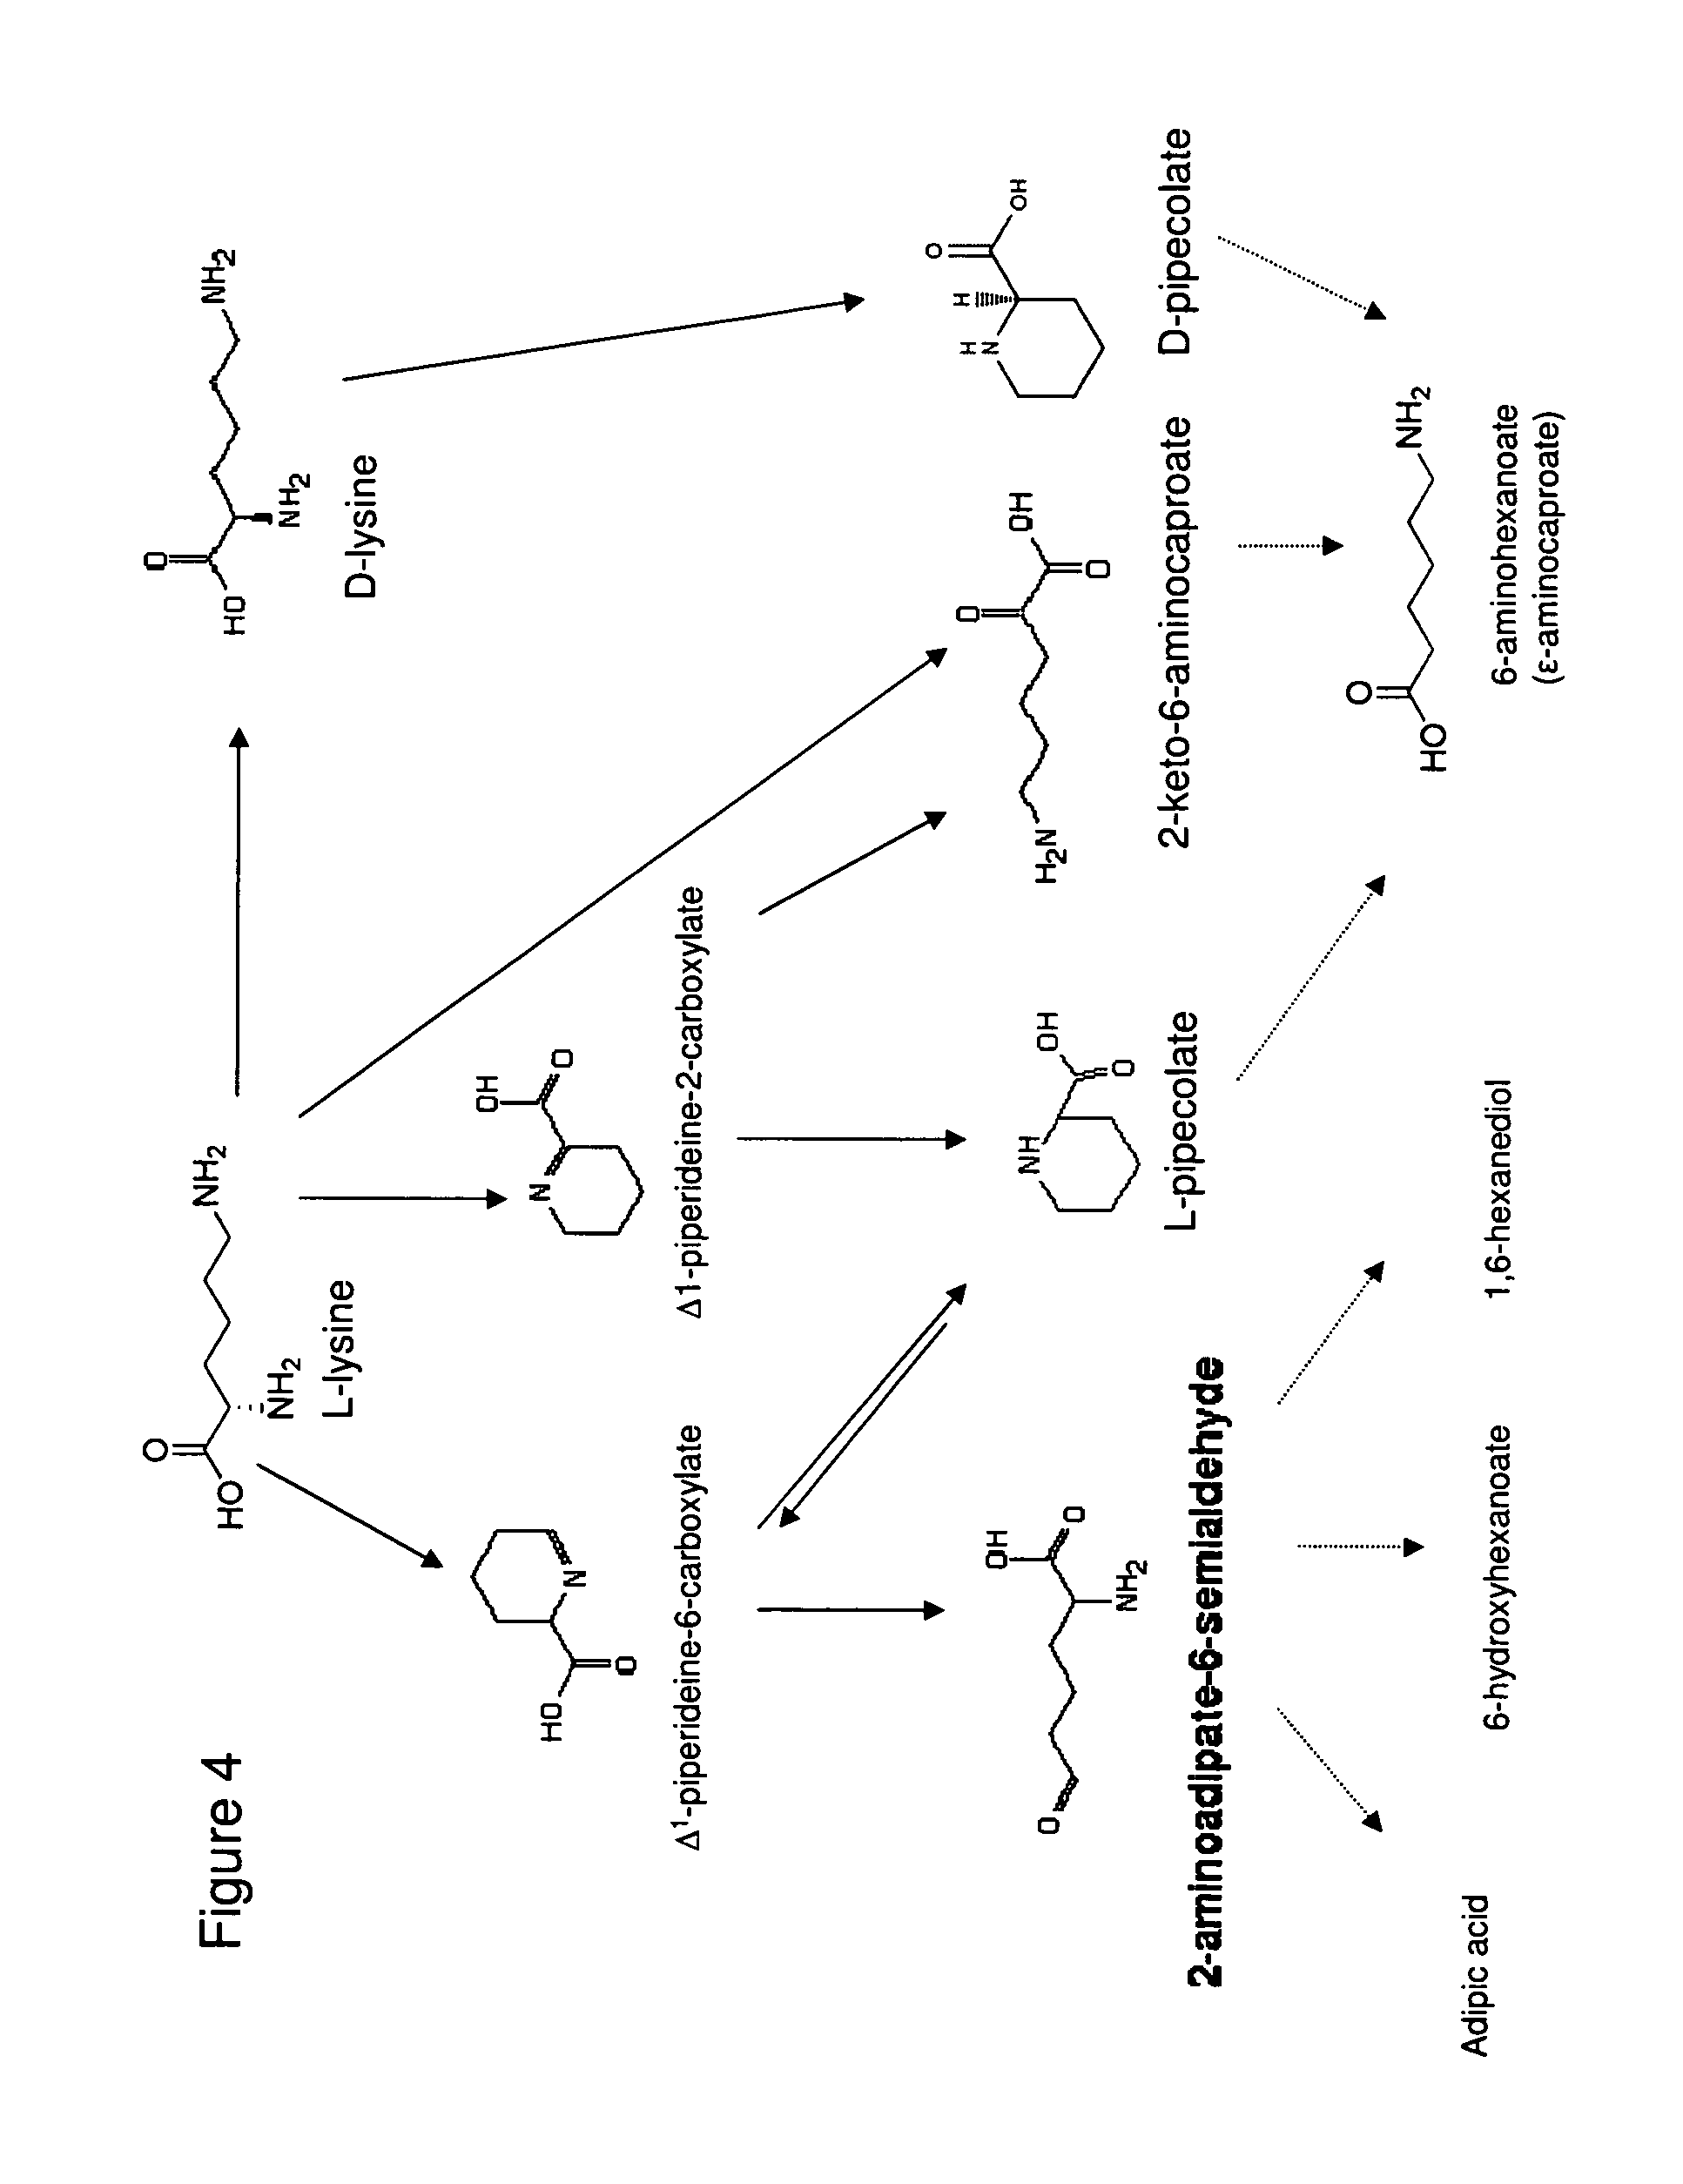 synthesis of caproic acid Hexanoic anhydride hexanoic acid, 1,1'-anhydride  poly(l-lactide) as  macroinitiator for the synthesis of poly(l-lactide)-b-poly(l-lysine) block  copolymer.